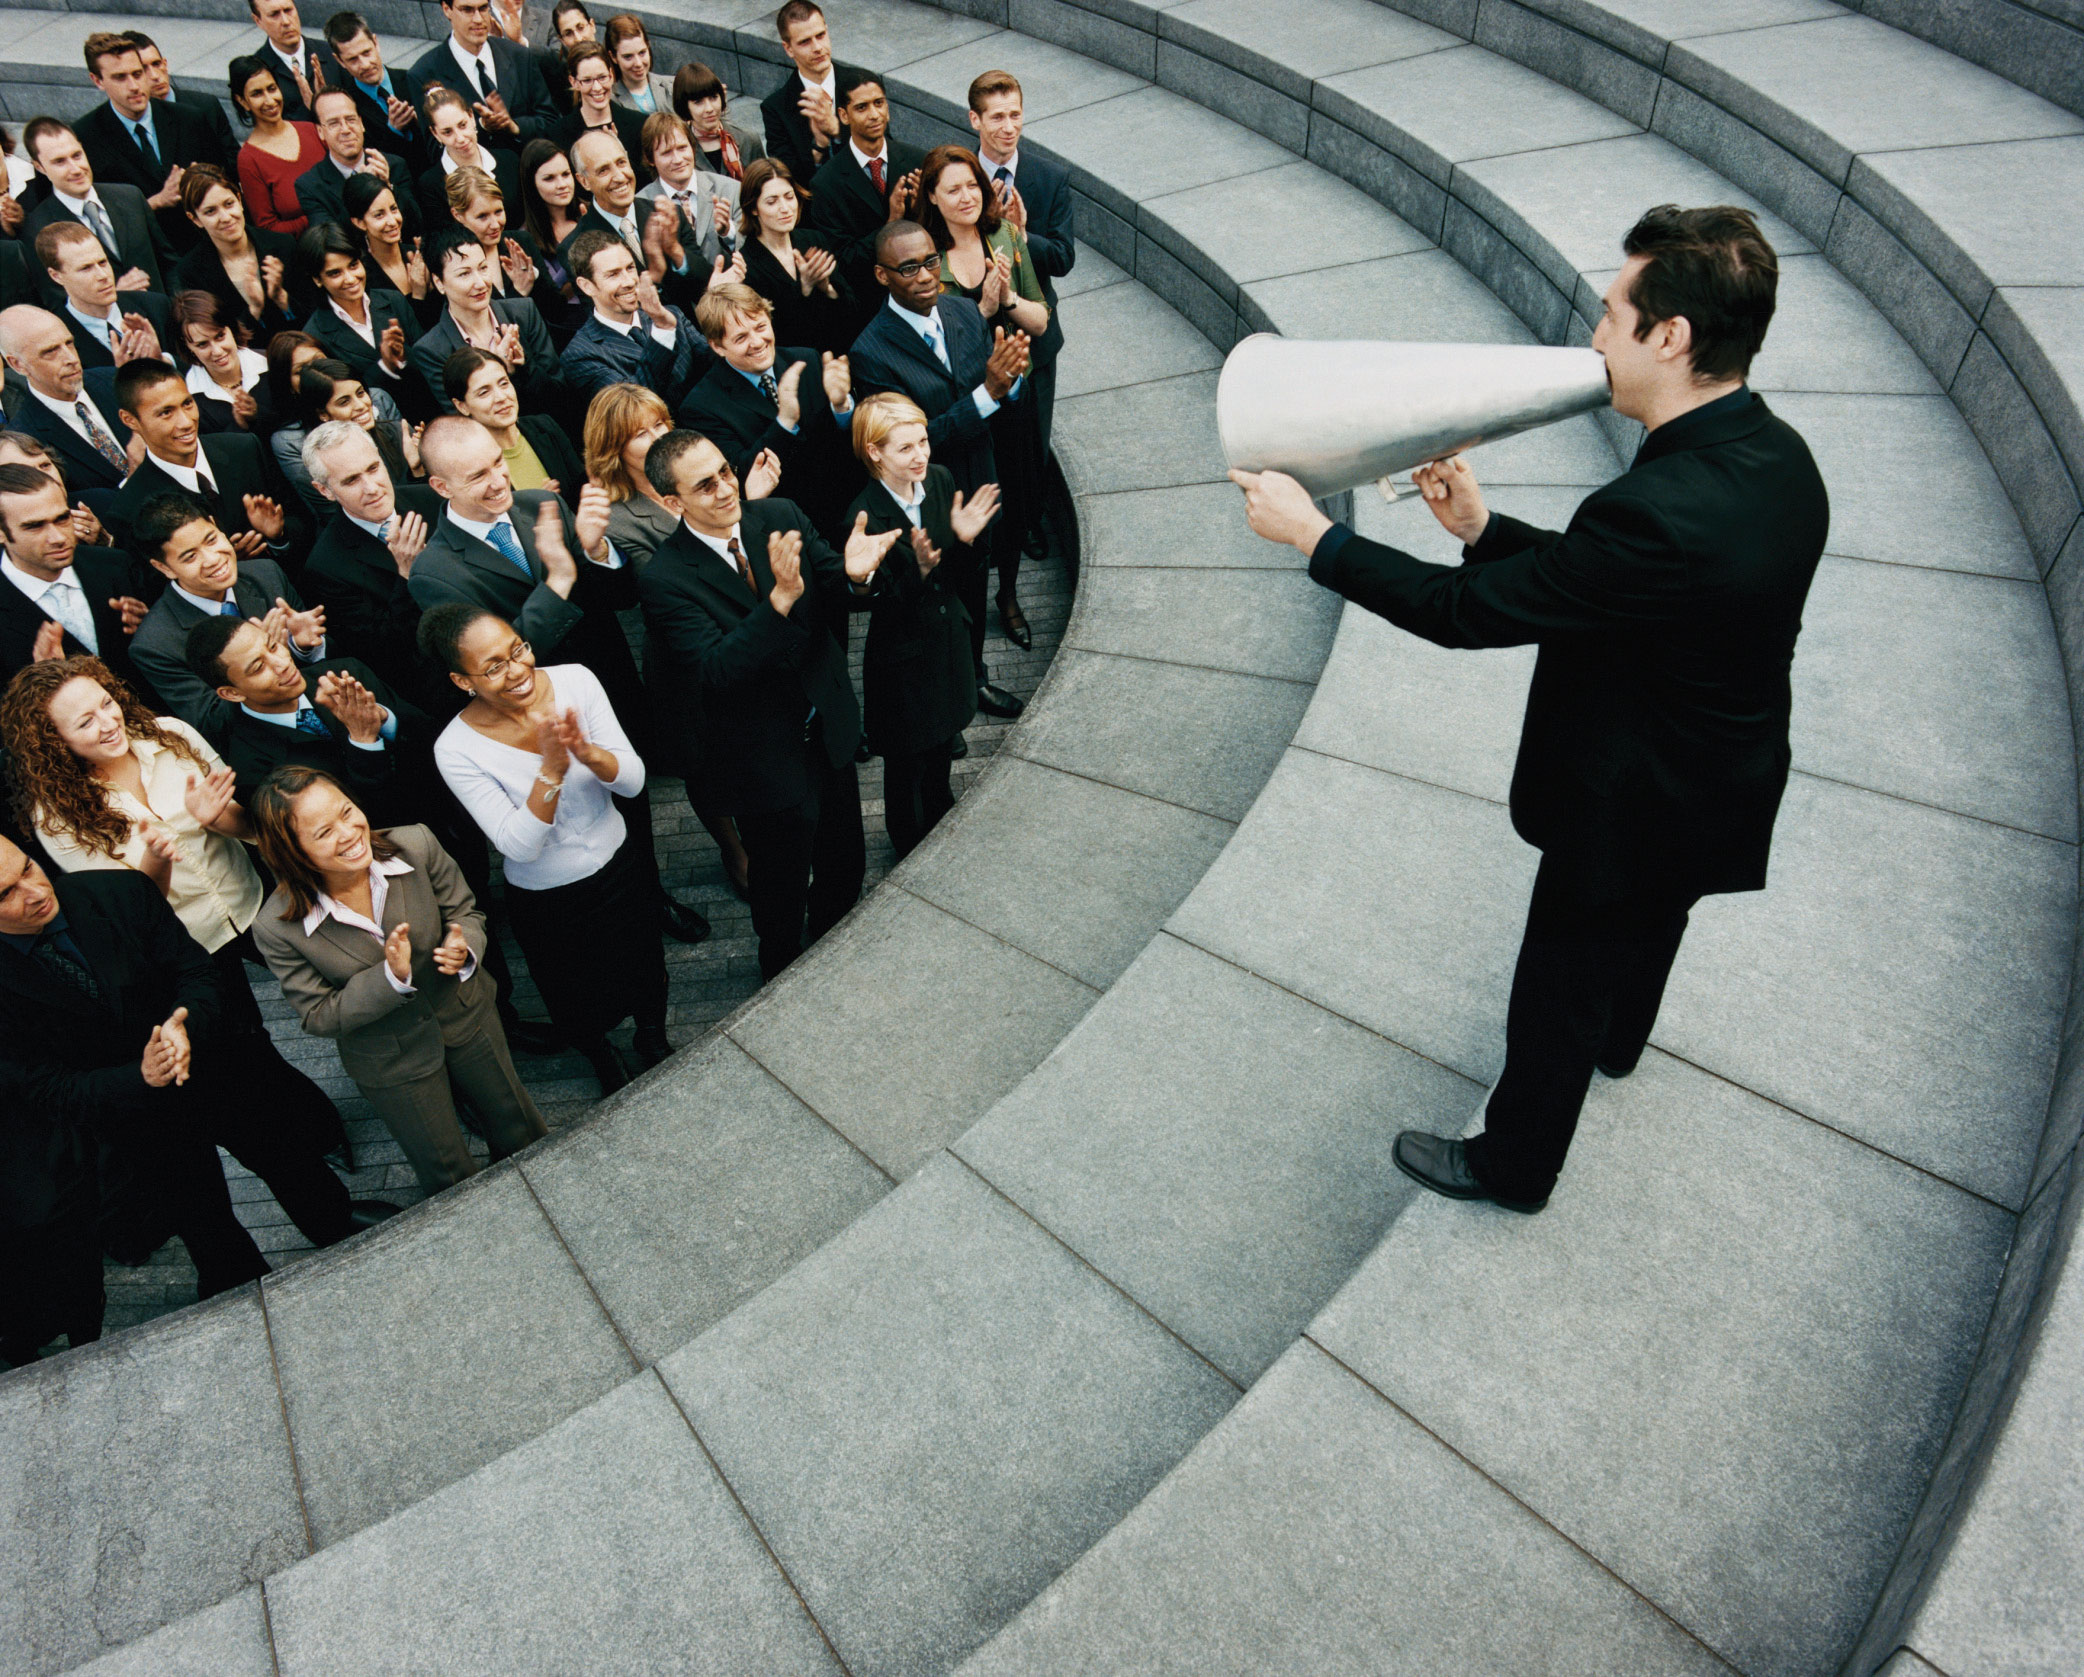 an evaluation of a public speakers confidence and ability to capture the crowd